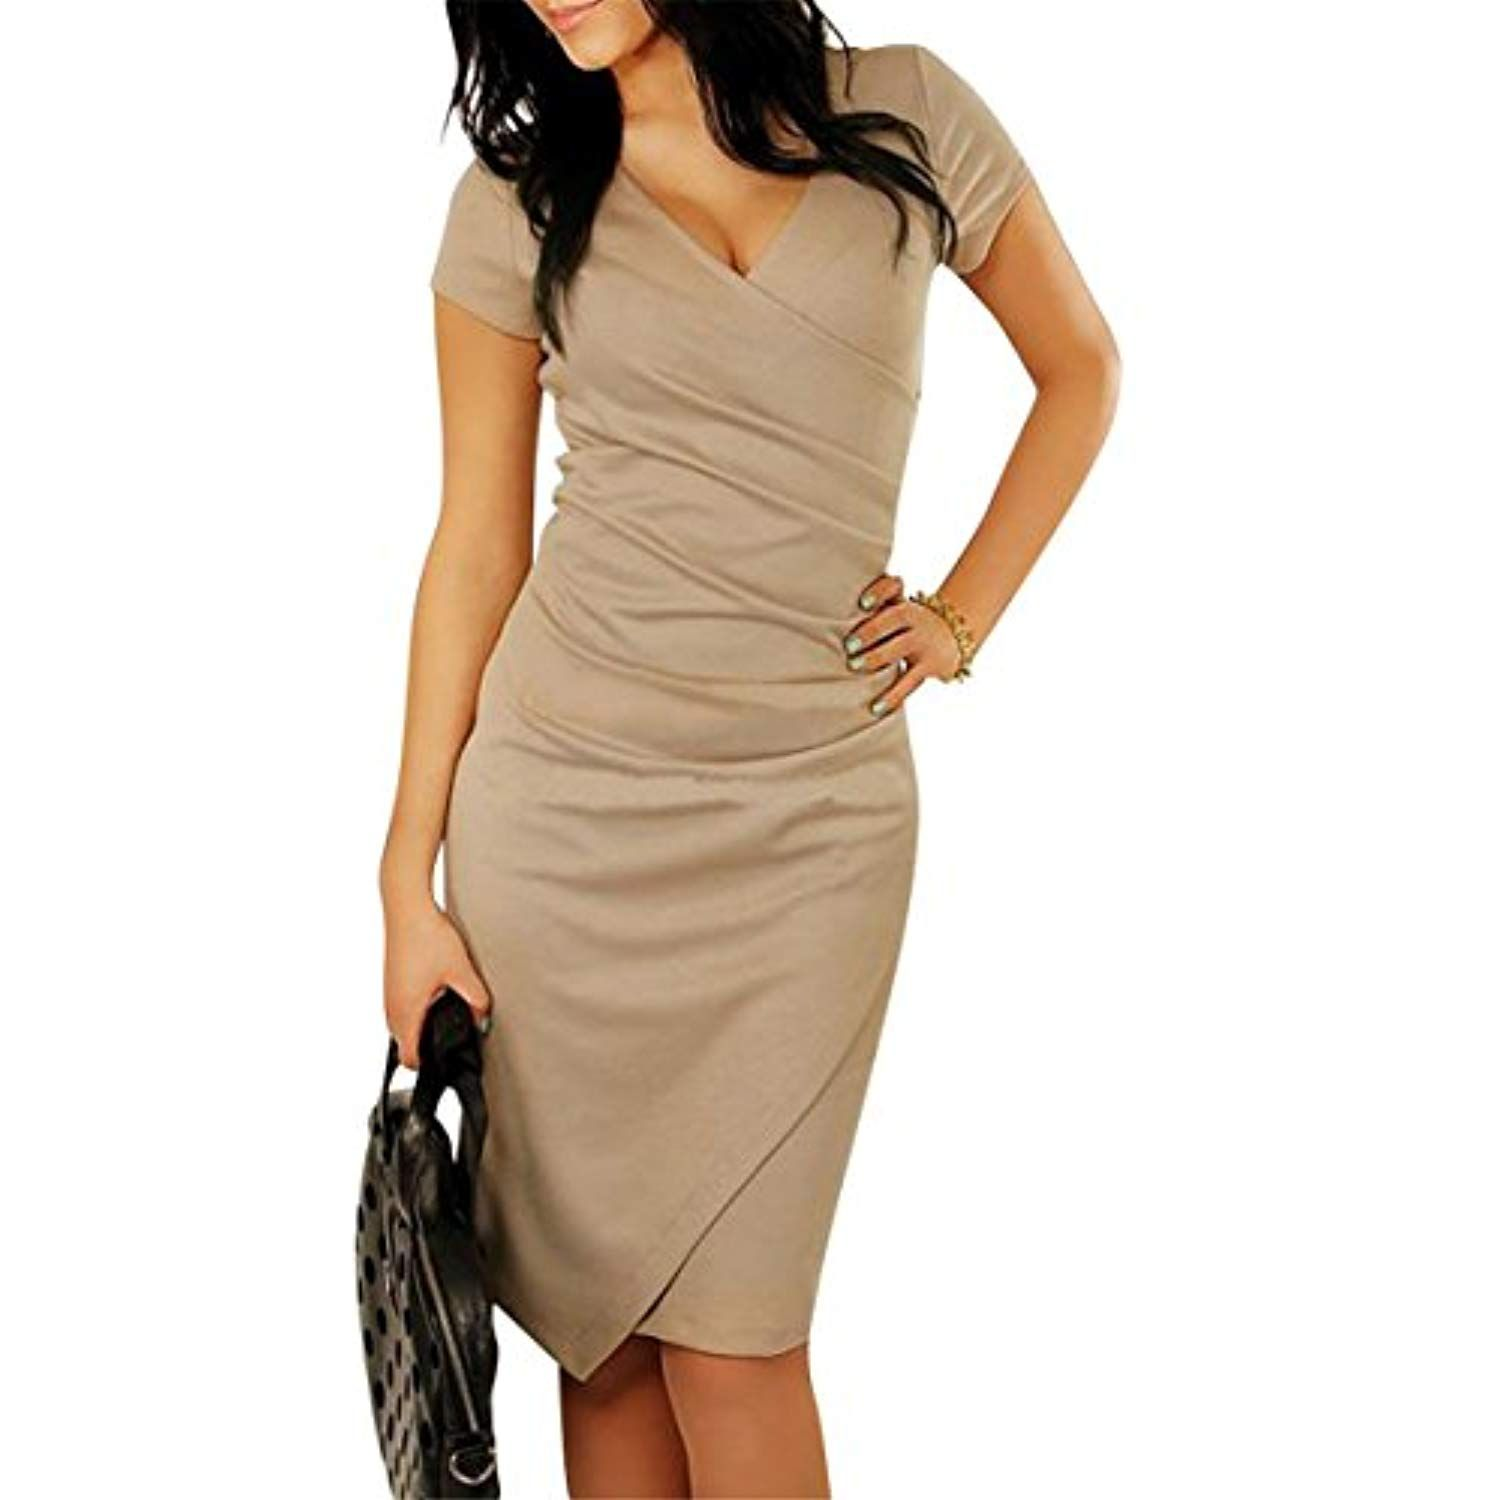 Women Vintage Bodycon Ruched Cocktail Pencil Business Dress Want Additional Info Click On The I Bodycon Dress Neck Bodycon Dress Bodycon Dress With Sleeves [ 1500 x 1500 Pixel ]